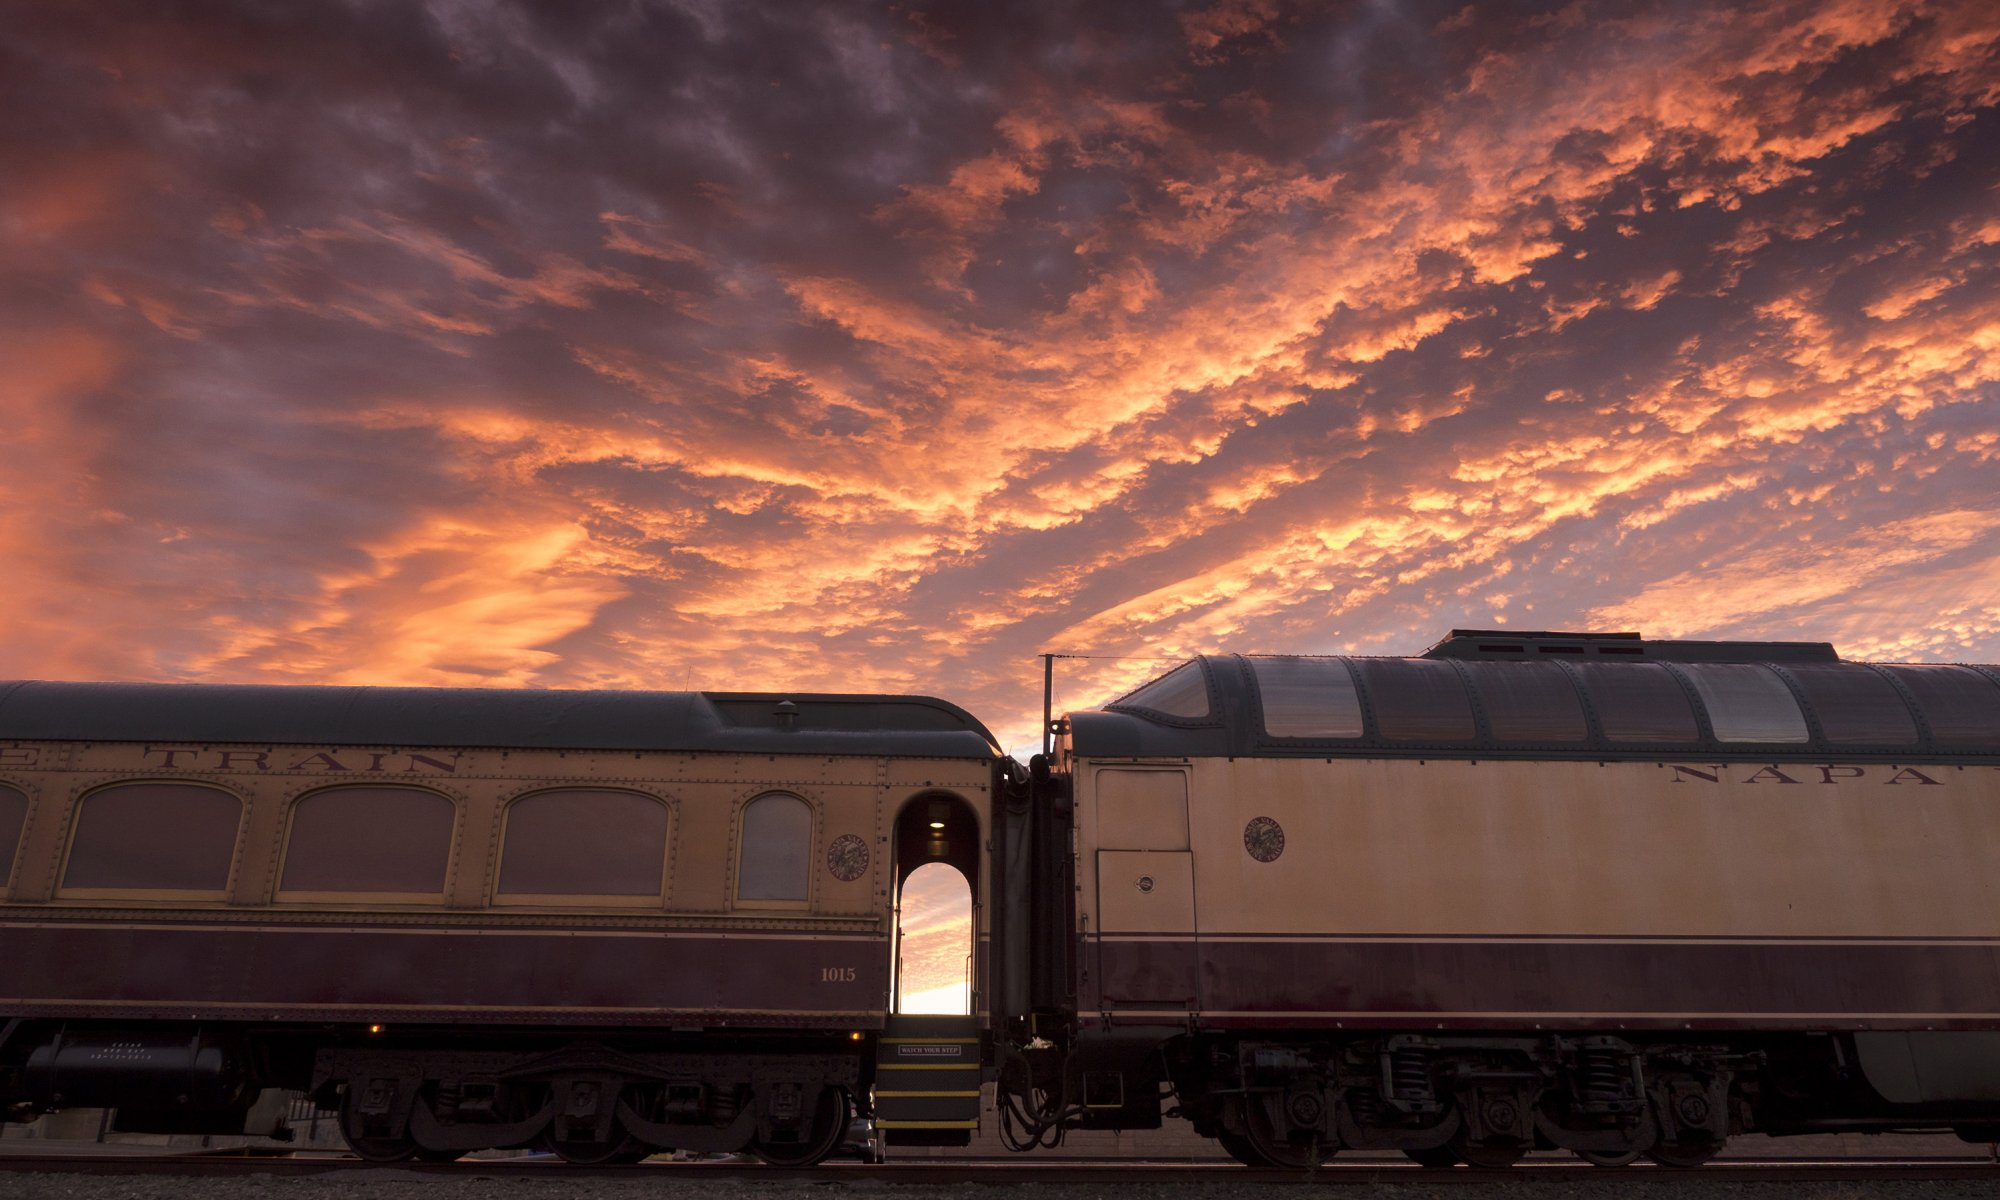 A train with the sunset in the background